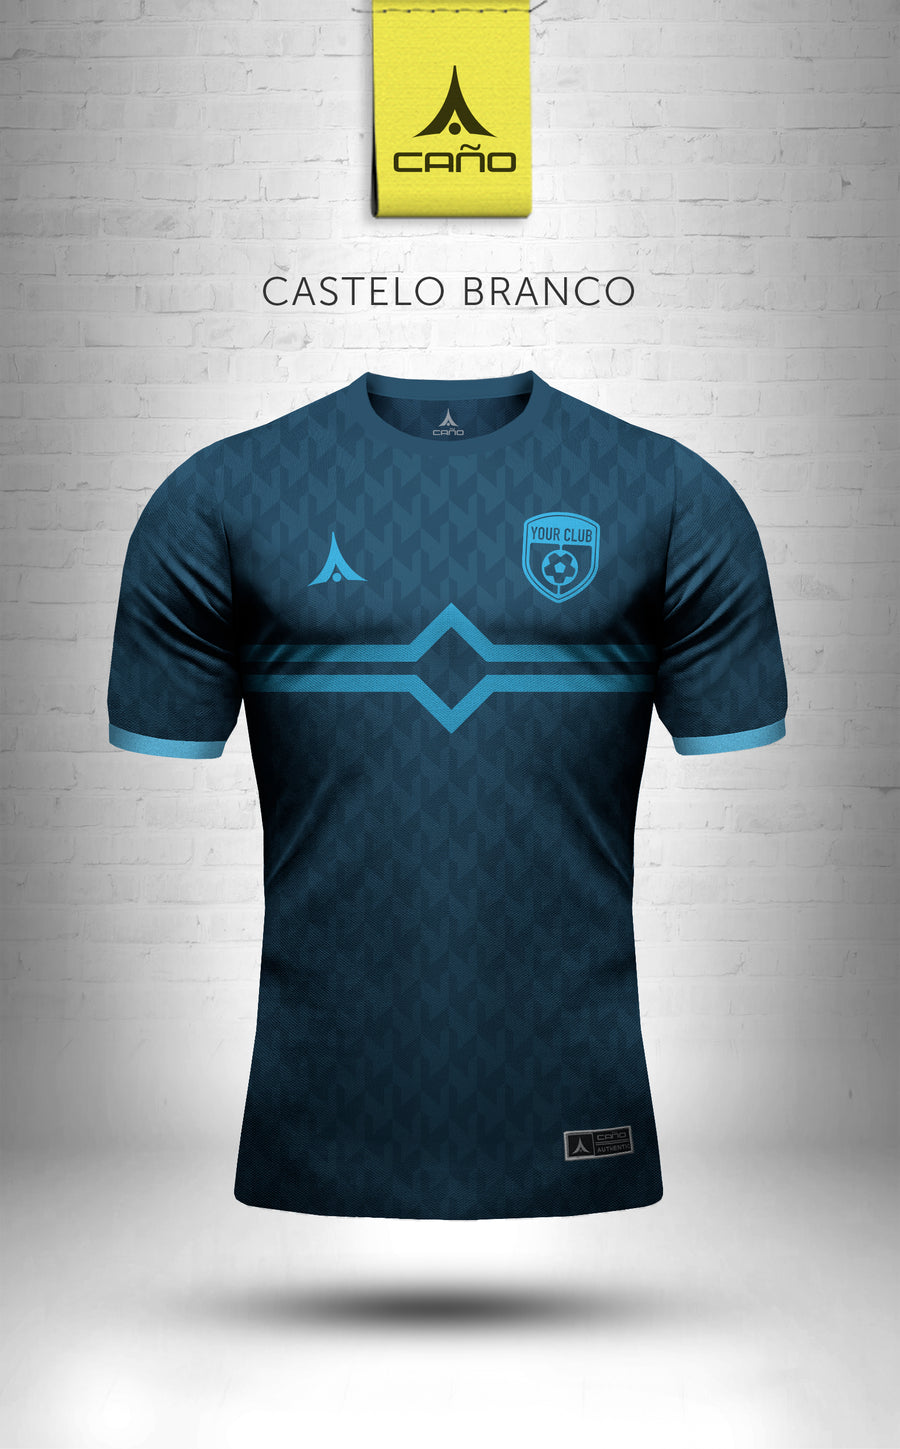 Castelo Branco in navy/light blue